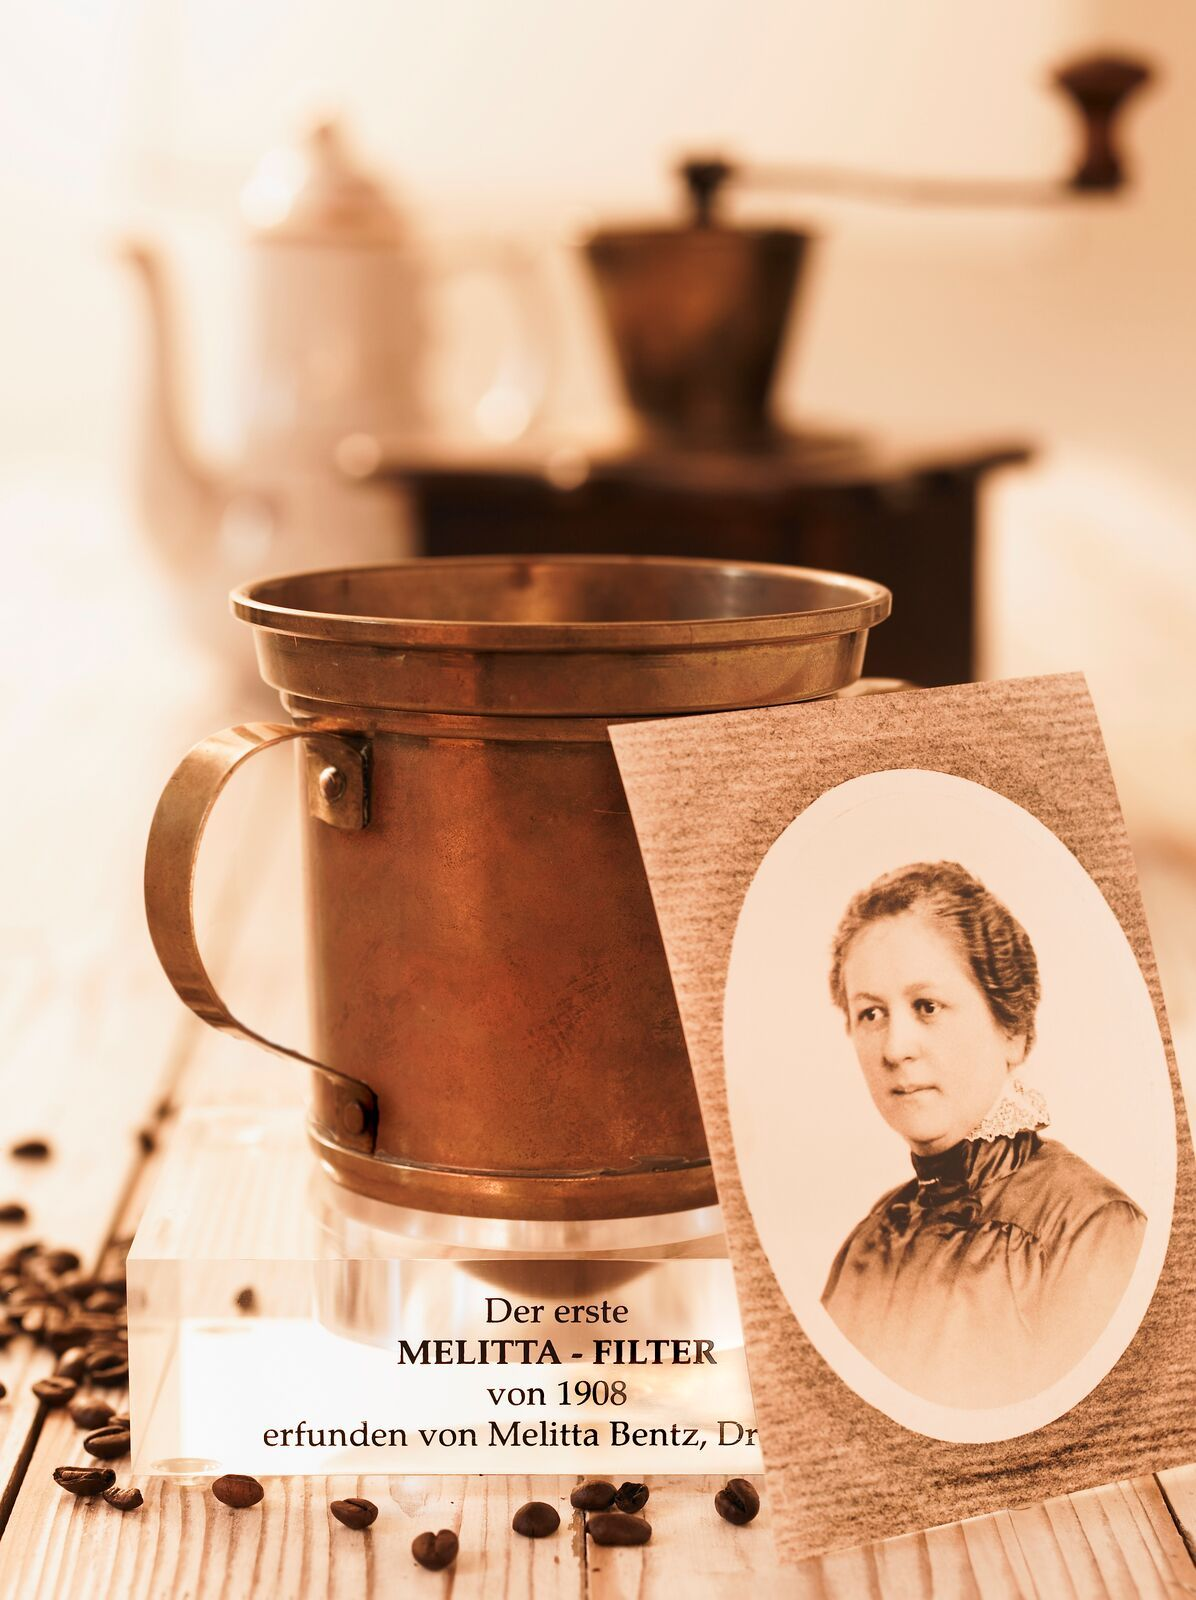 Our founder Melitta Bentz was a housewife who became a successful entrepreneur when she invented ...